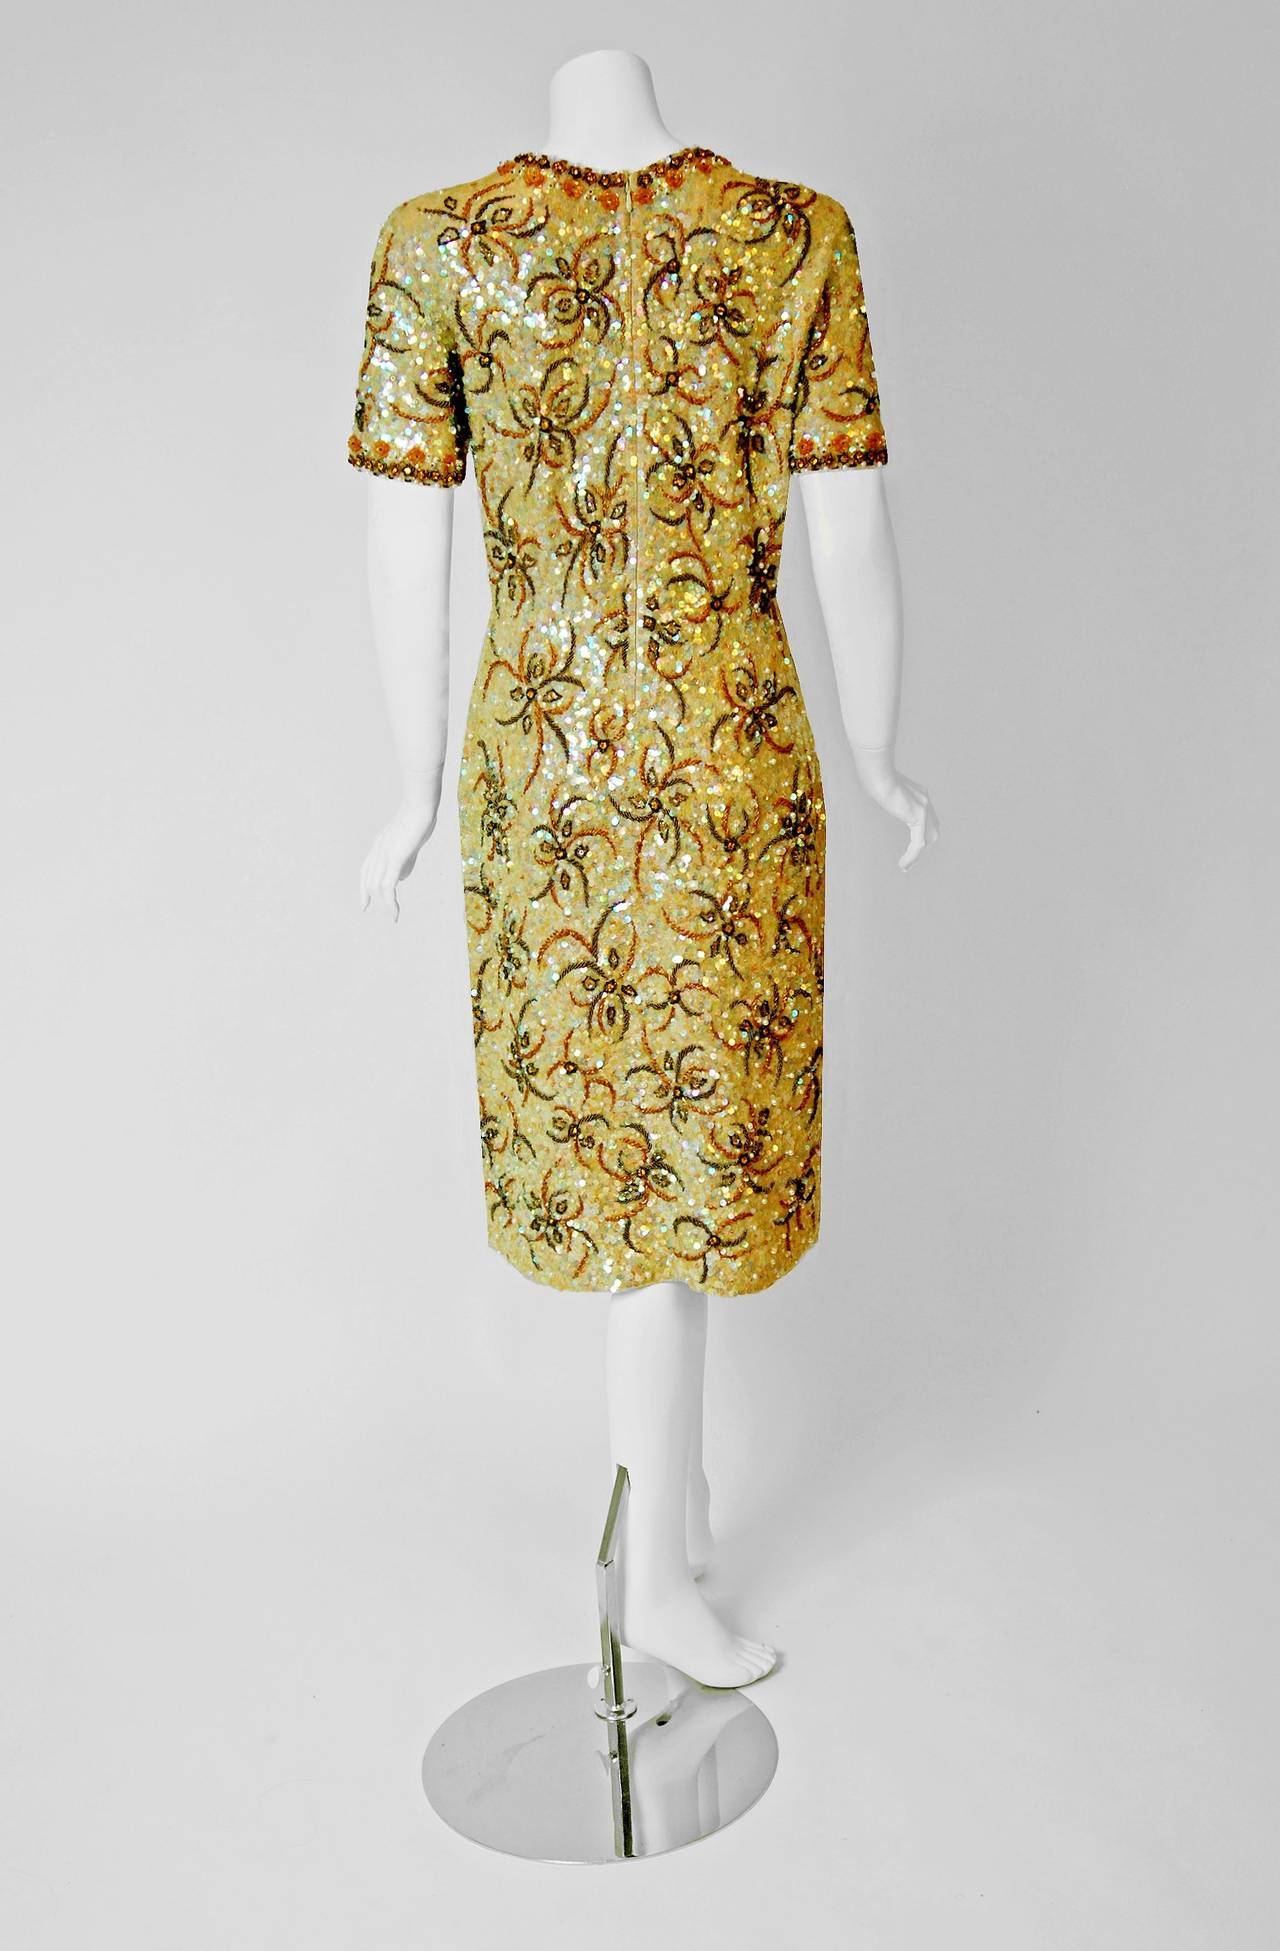 1950's Gene Shelly Golden-Yellow Sequin Beaded Knit Abstract Cocktail Dress 4